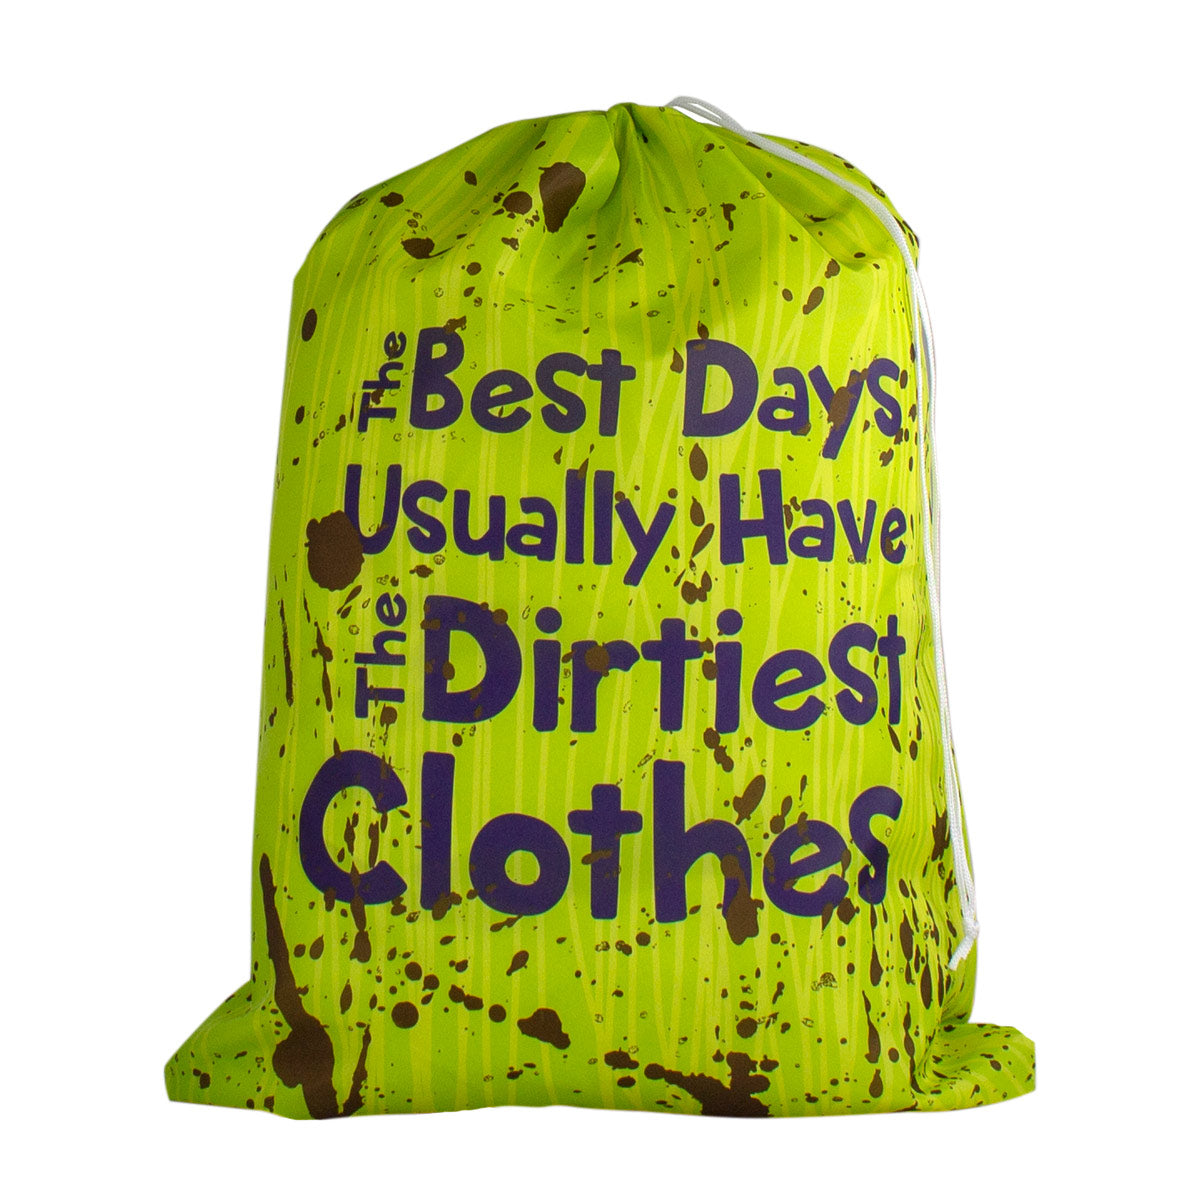 Designer Laundry Bag - The Best Days…